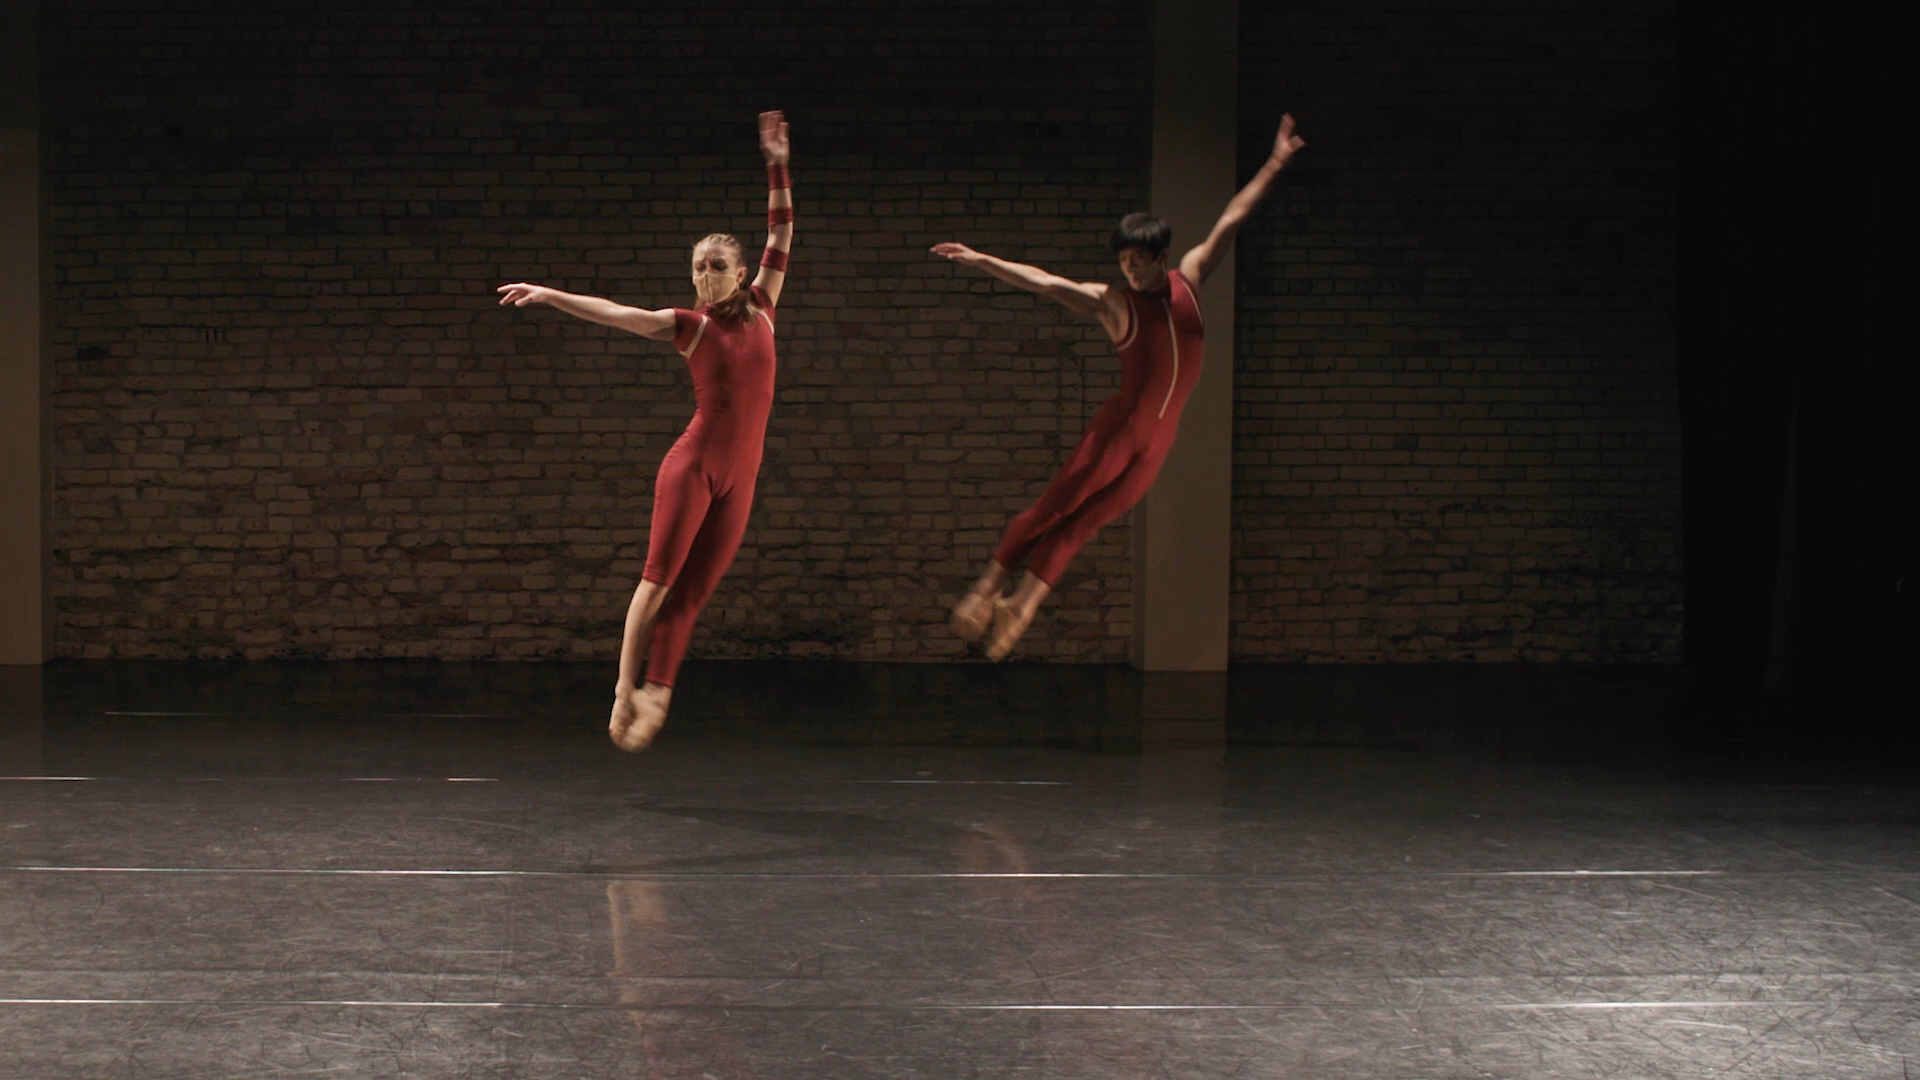 An image of two dancers in red leotards. Both of them are mid leap, with their legs together and arms in the air. They are in a dance studio, with a brick wall behind them.